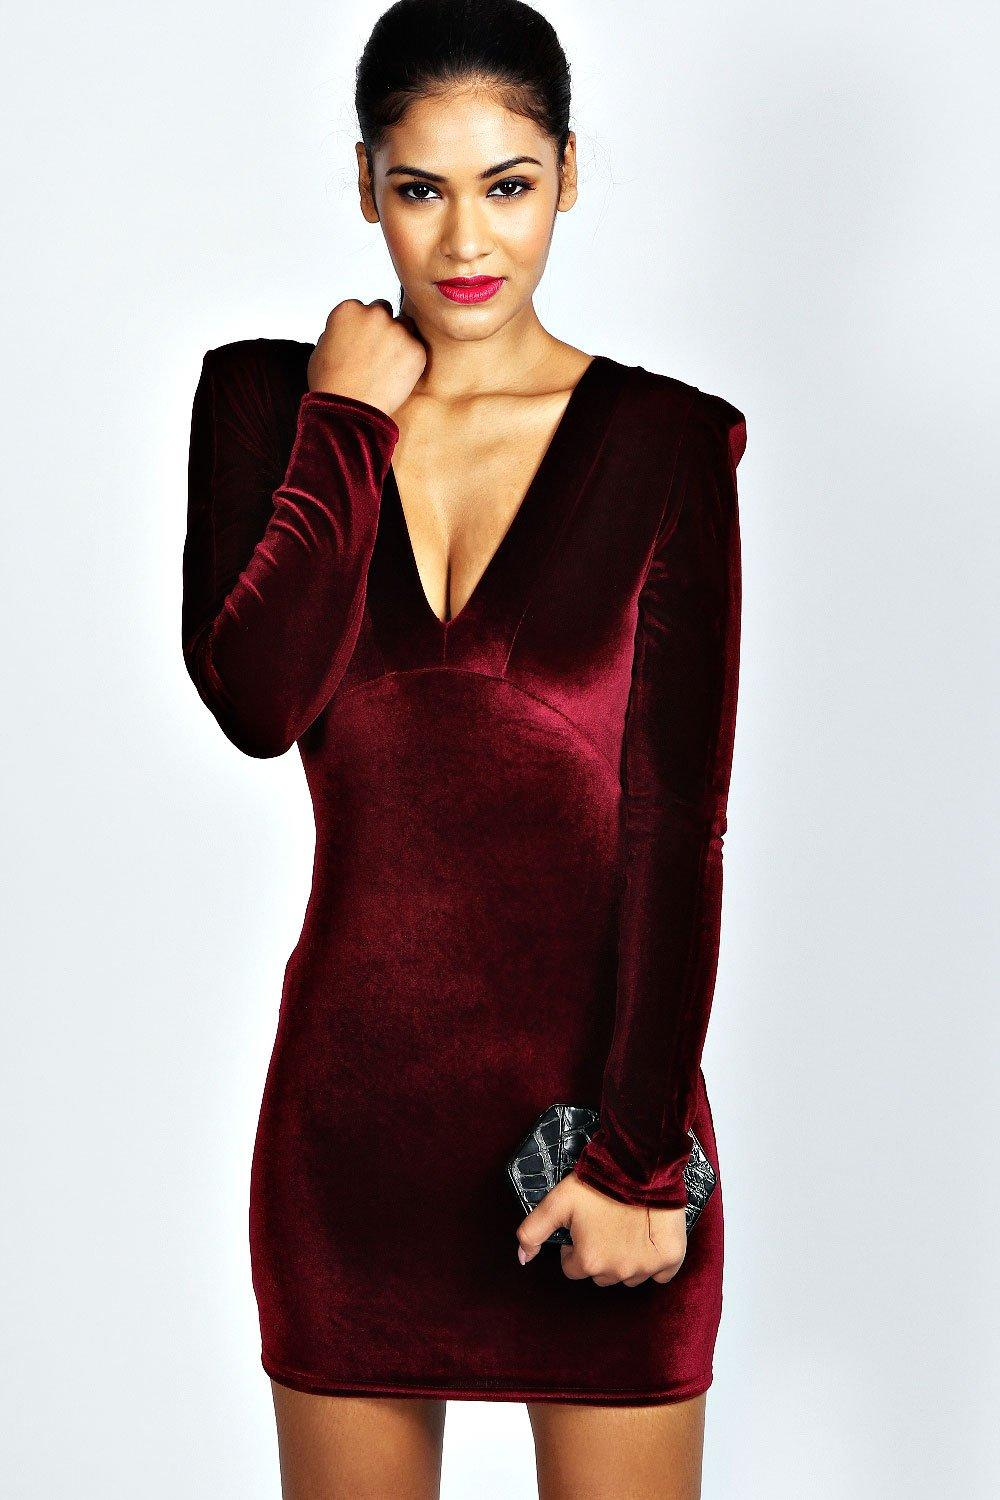 Details about boohoo womens kate velvet plunge neck bodycon dress